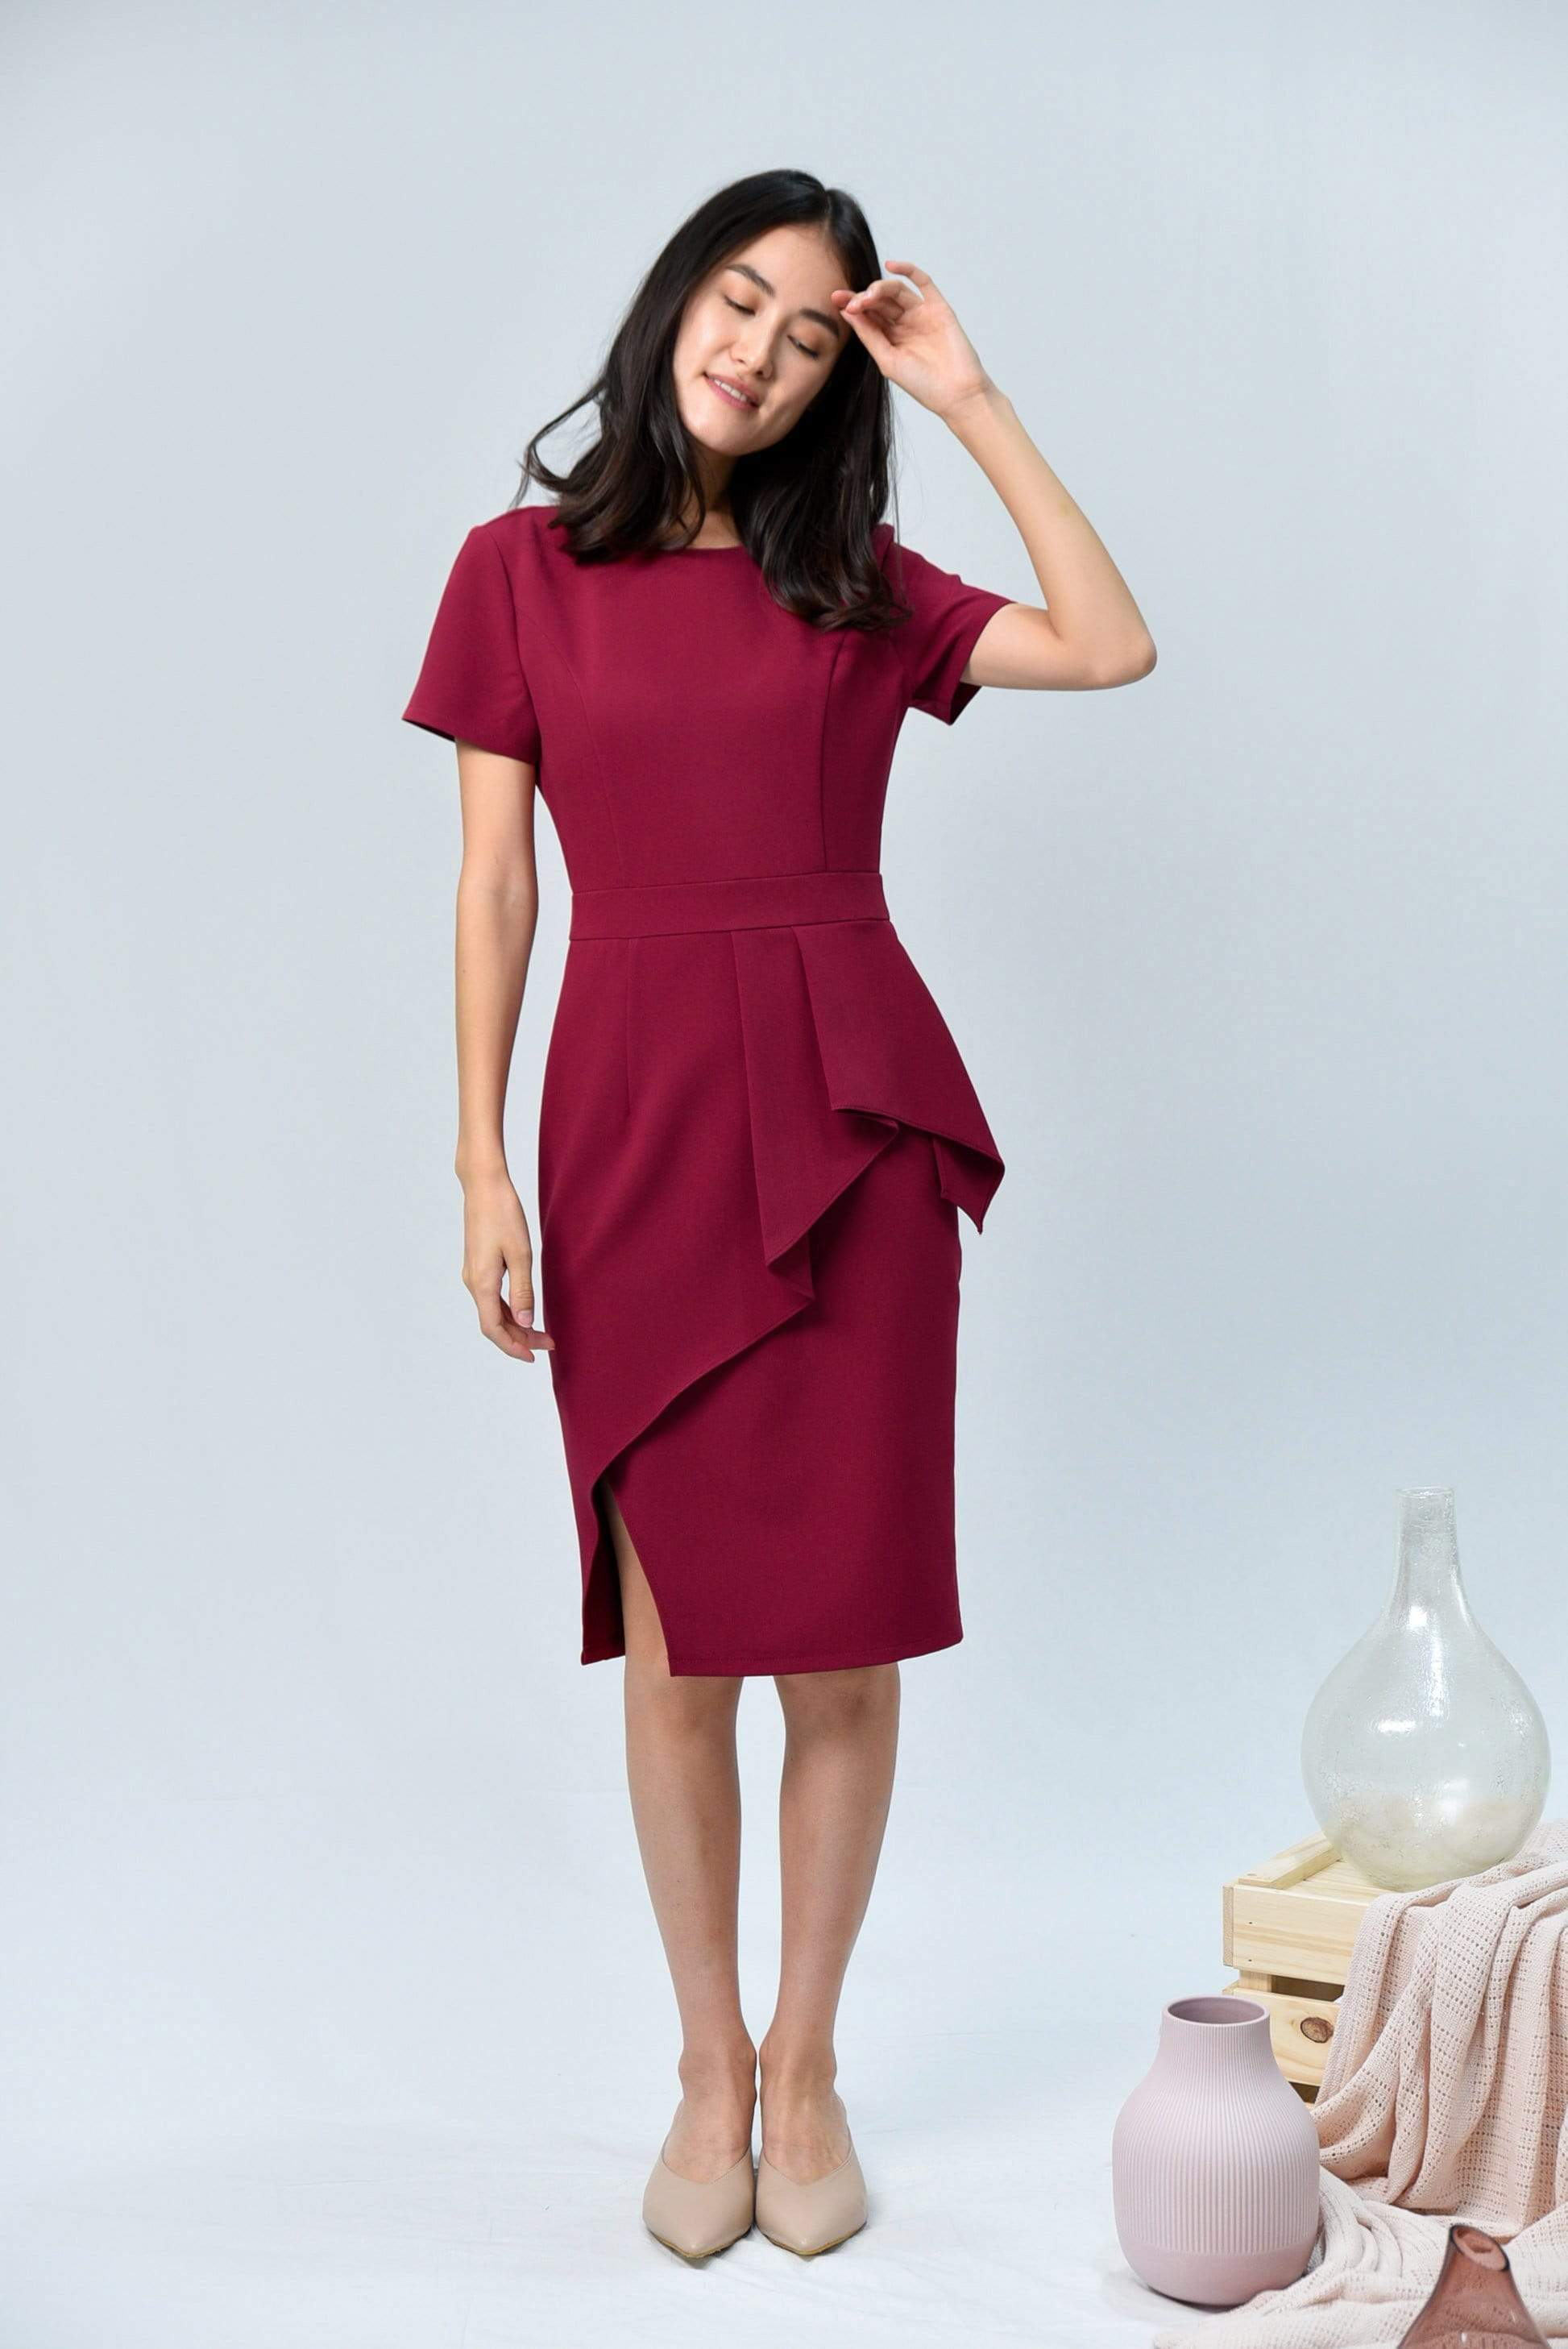 AVA BERRY RED SLEEVED PEPLUM DRESS